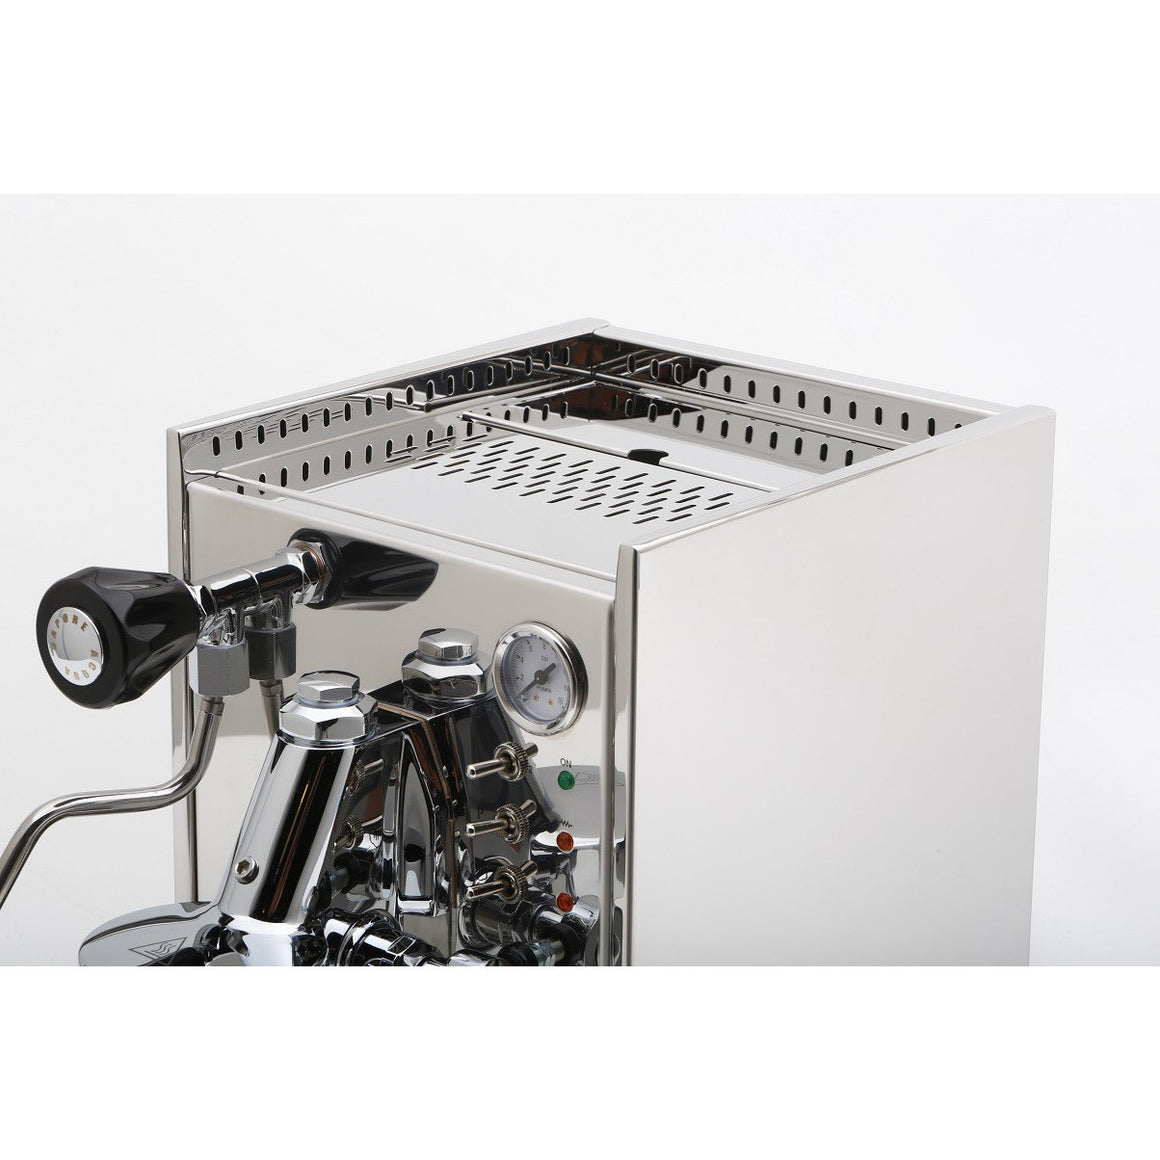 QUICK MILL ALEXIA EVO ESPRESSO MACHINE - My Espresso Shop - 5